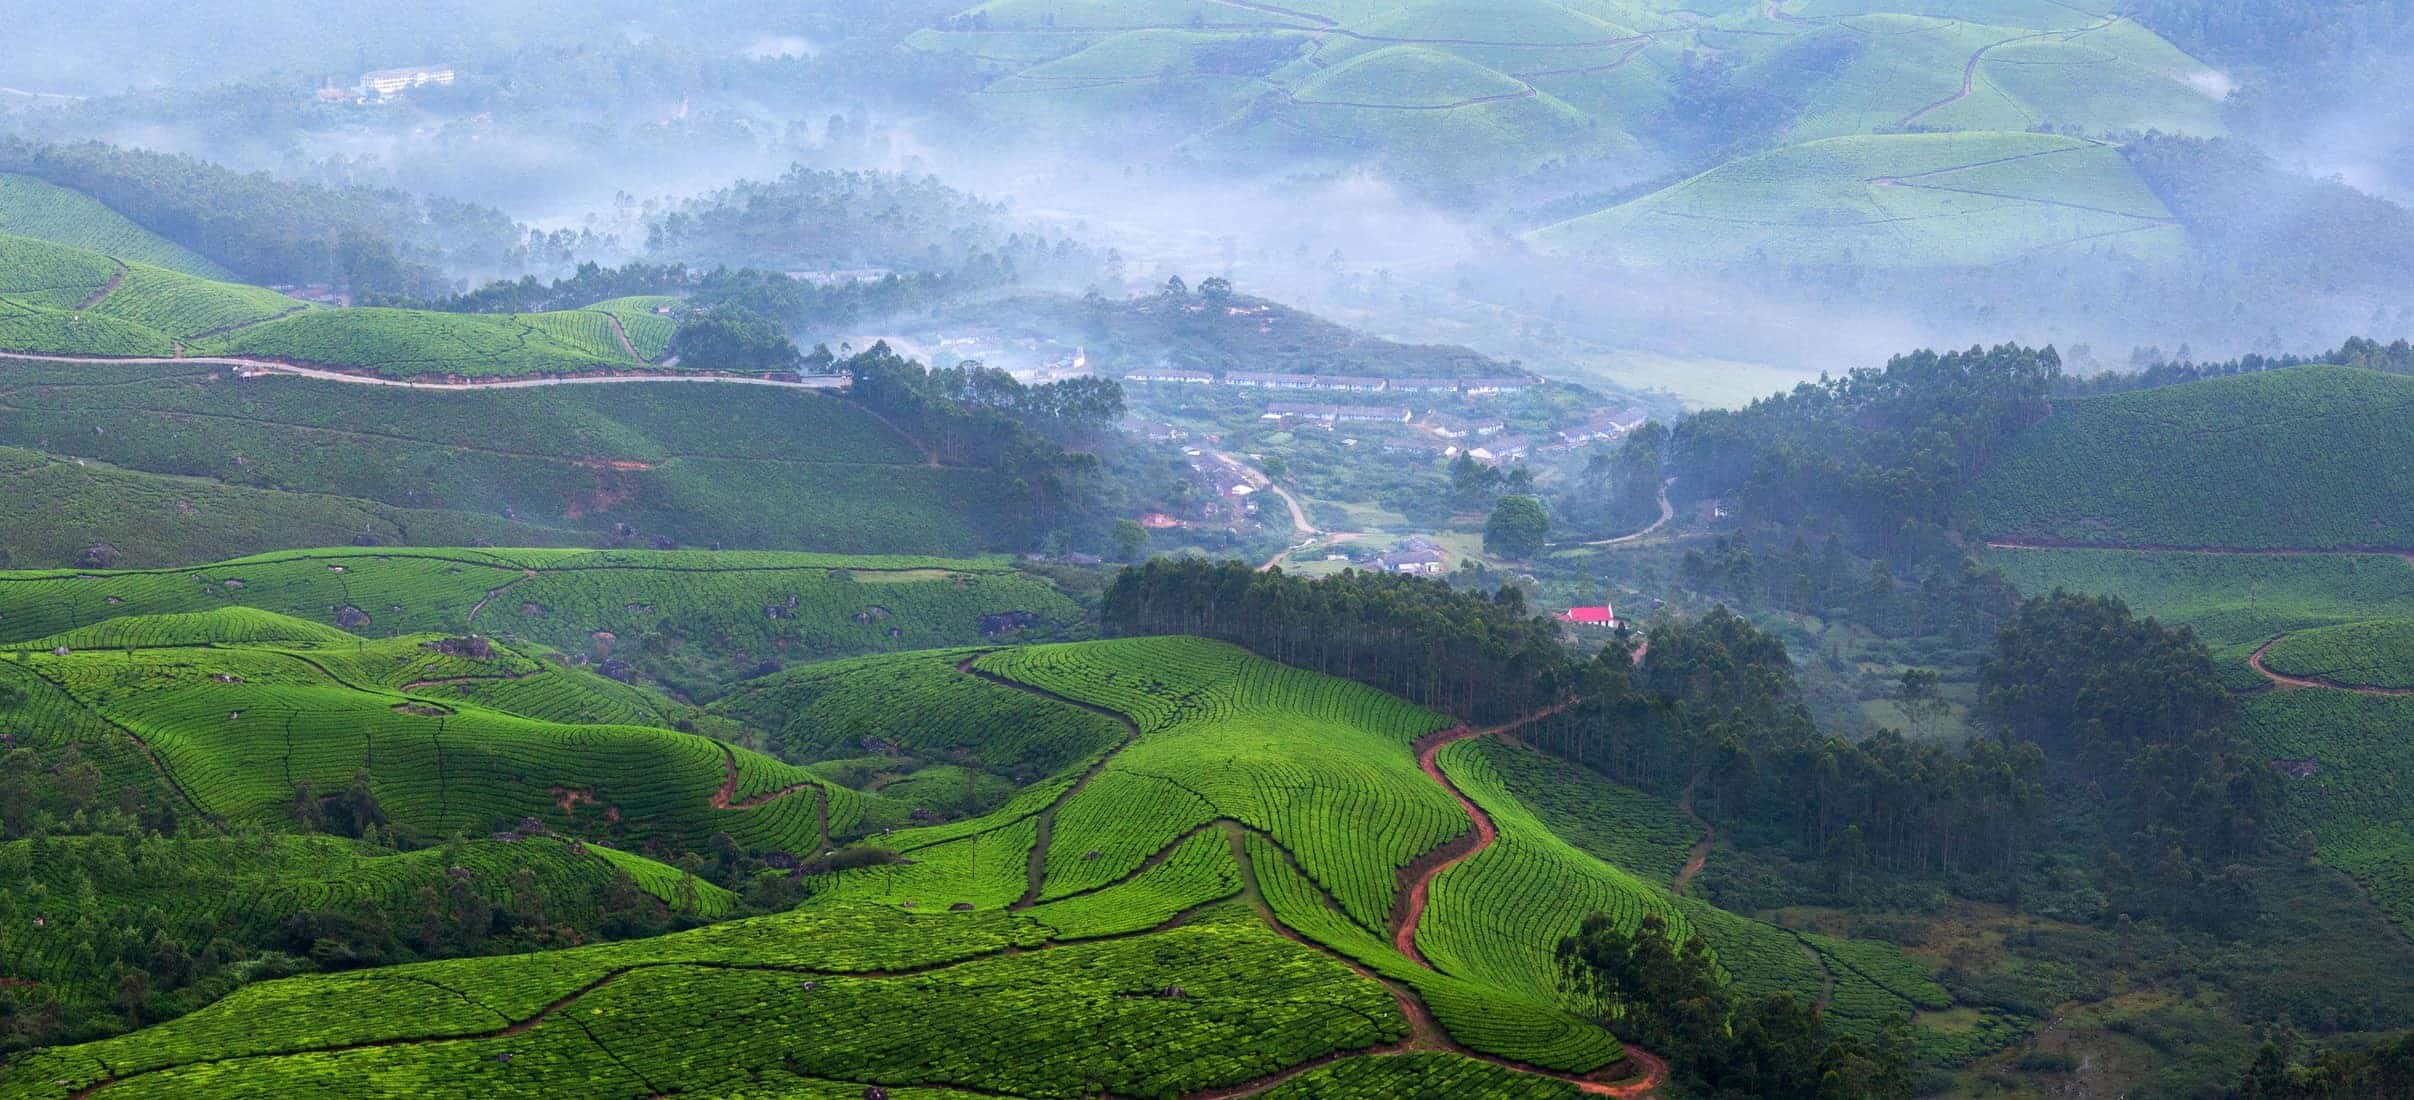 Panorama of tea plantations in Munnar, Kerala, South India. It is situated at around 1,600 metres above sea level in the Western Ghats range of mountains.